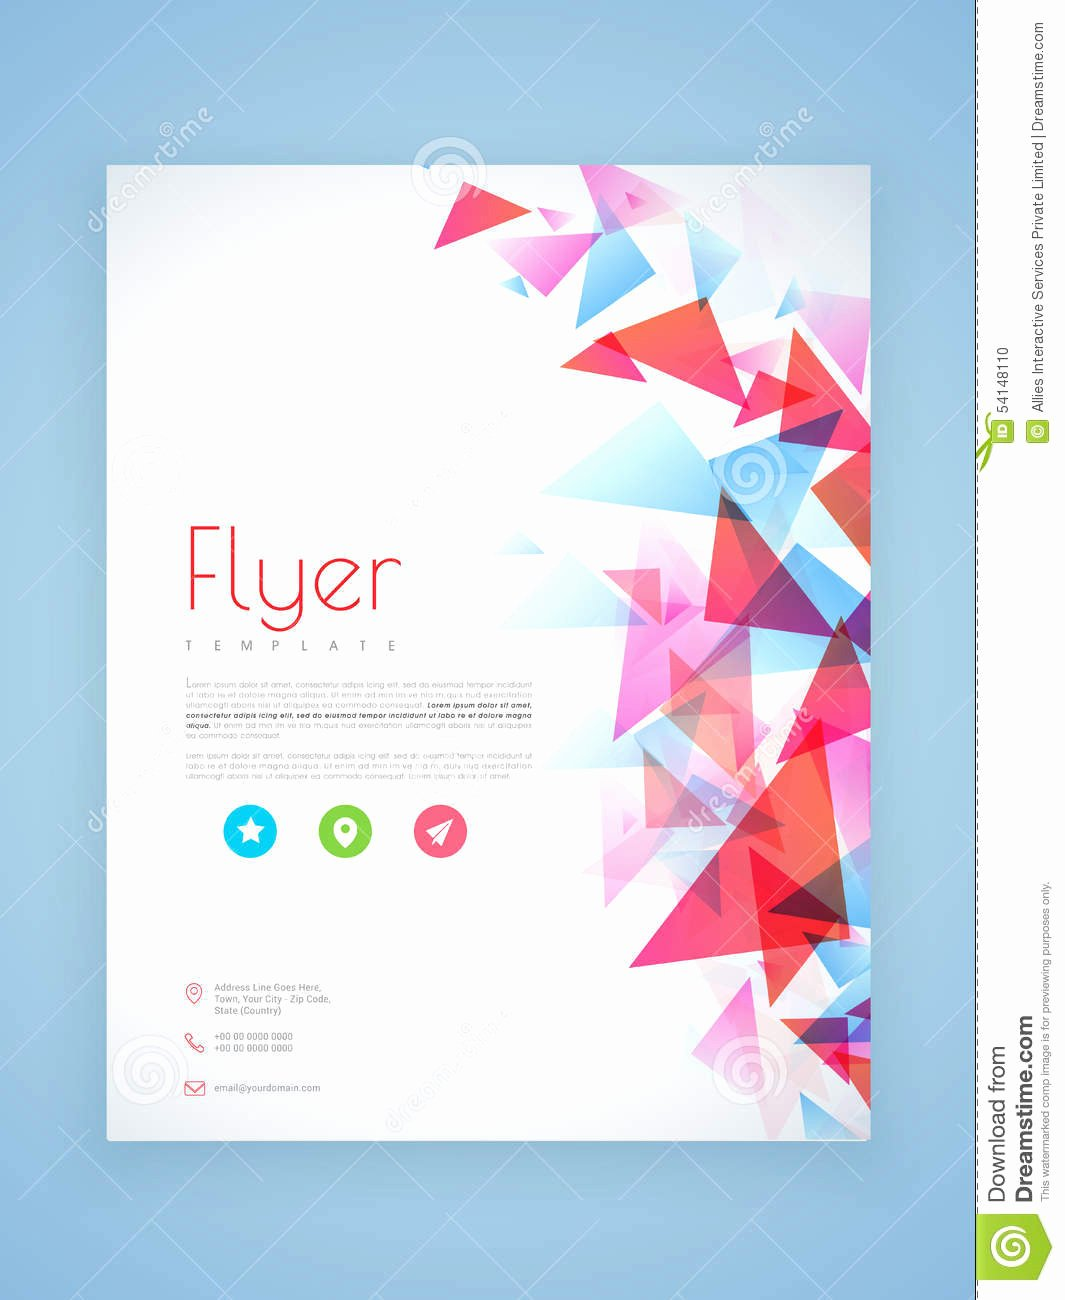 Professional Flyer Template Brochure Design Stock